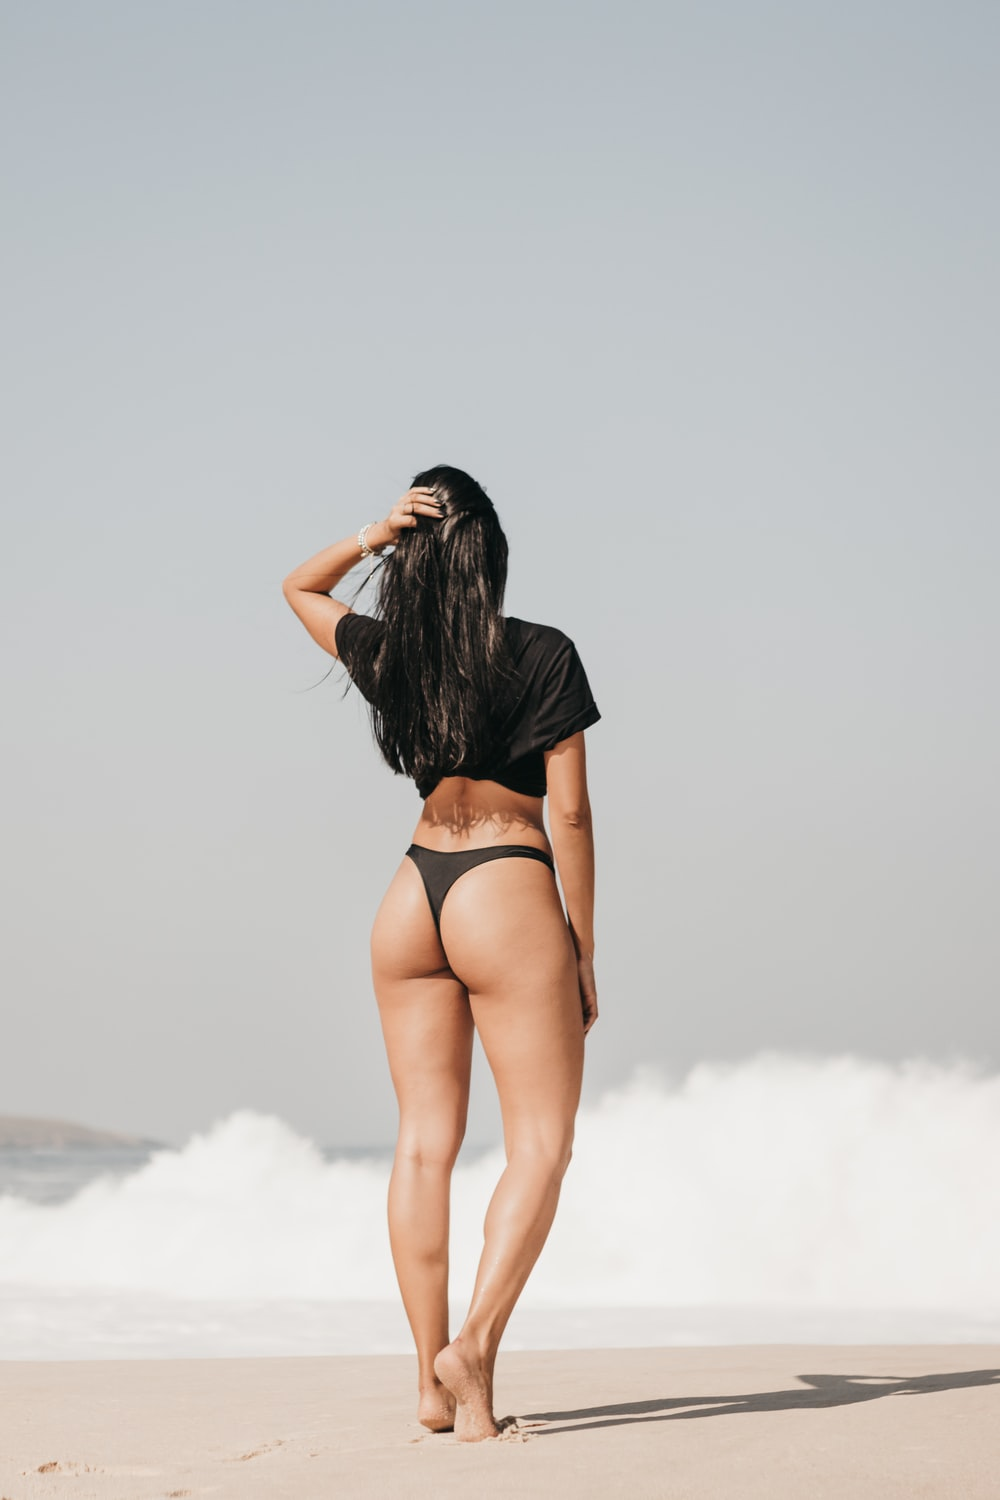 20 Bikini Pictures Images Hq Download Free Photos On Unsplash